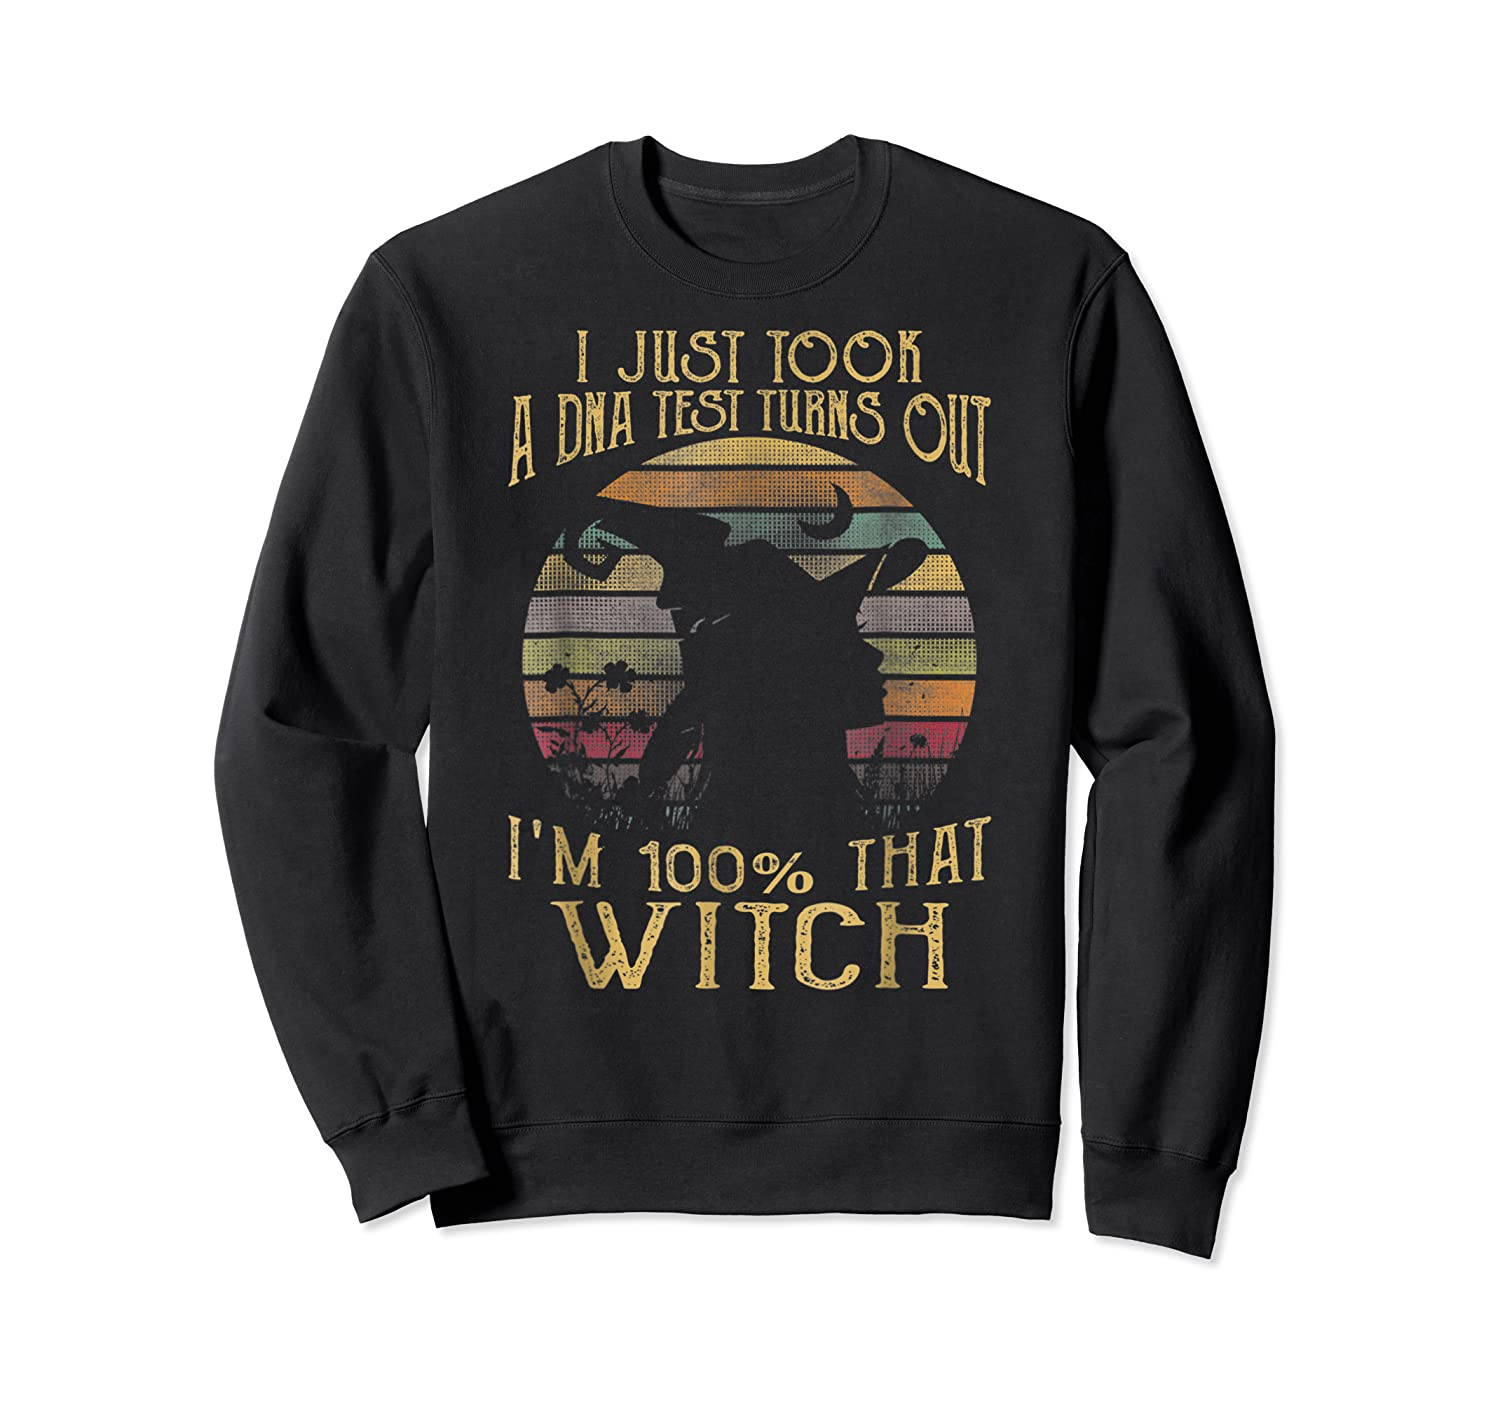 Just Took A Dna Test Turns Out 'm 100 Percent That Witch Shirts Crewneck Sweater